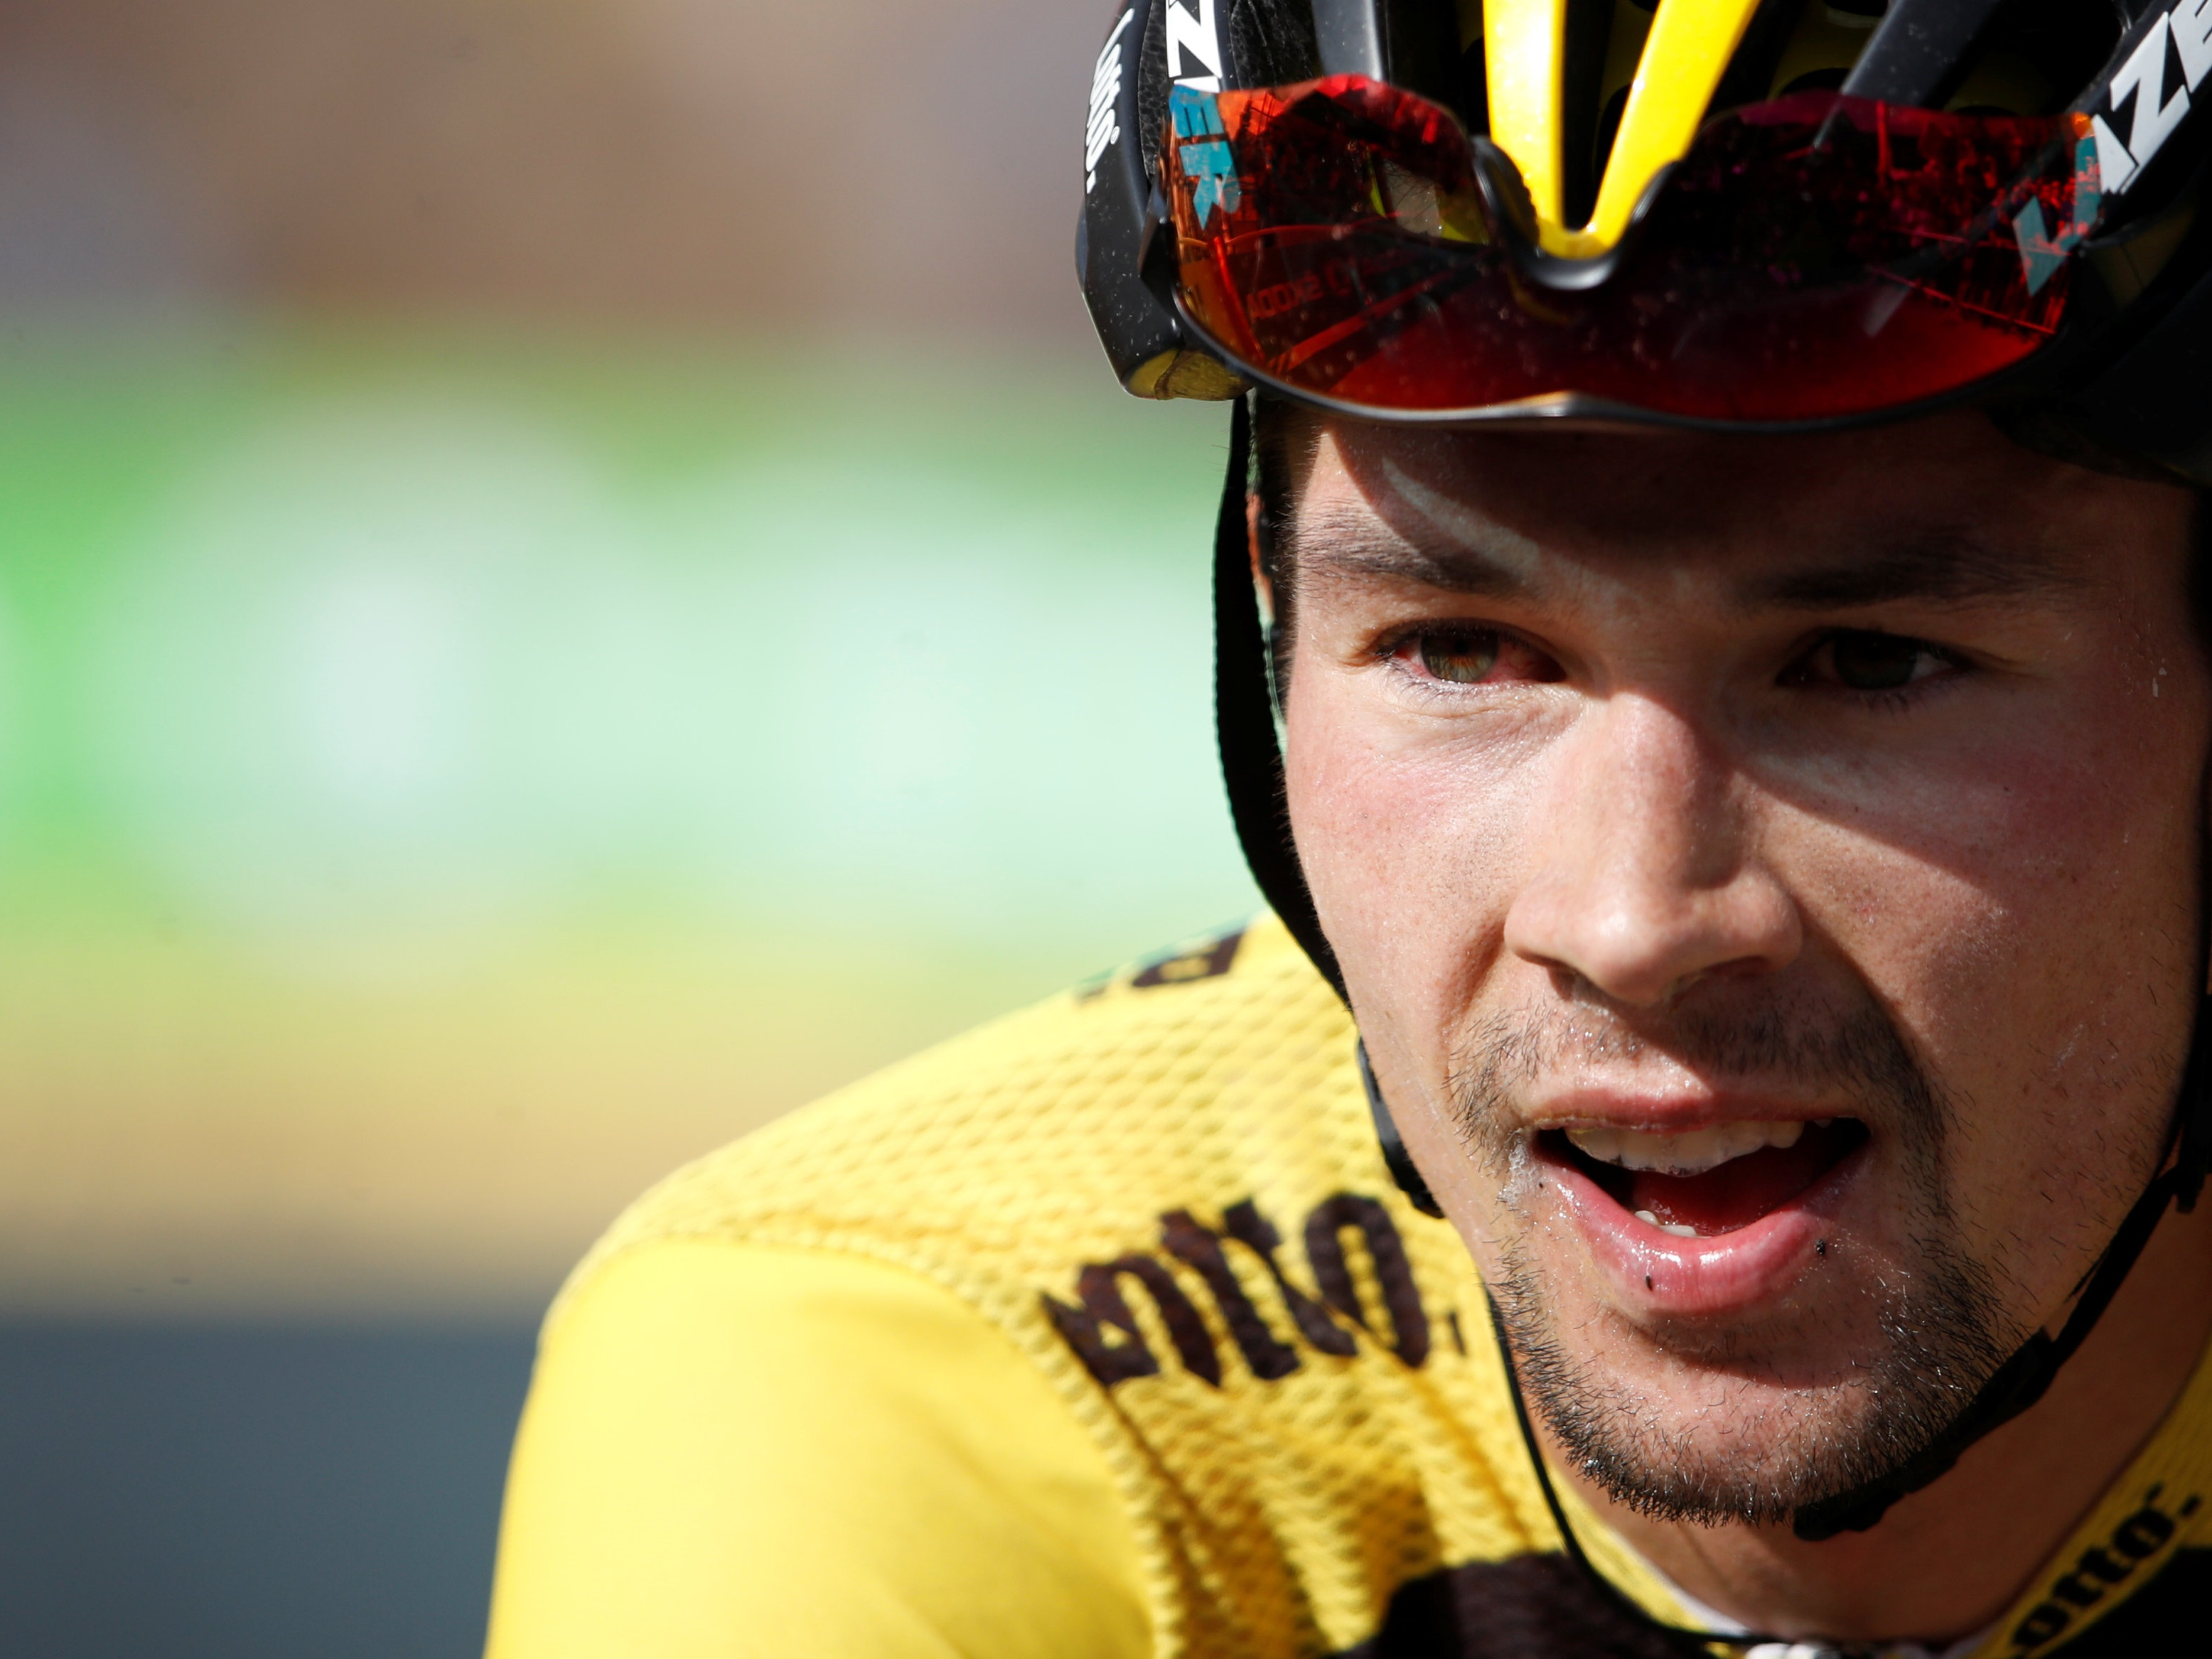 Primoz Roglič already has a stage win to his name and can add the time trial in Marseille